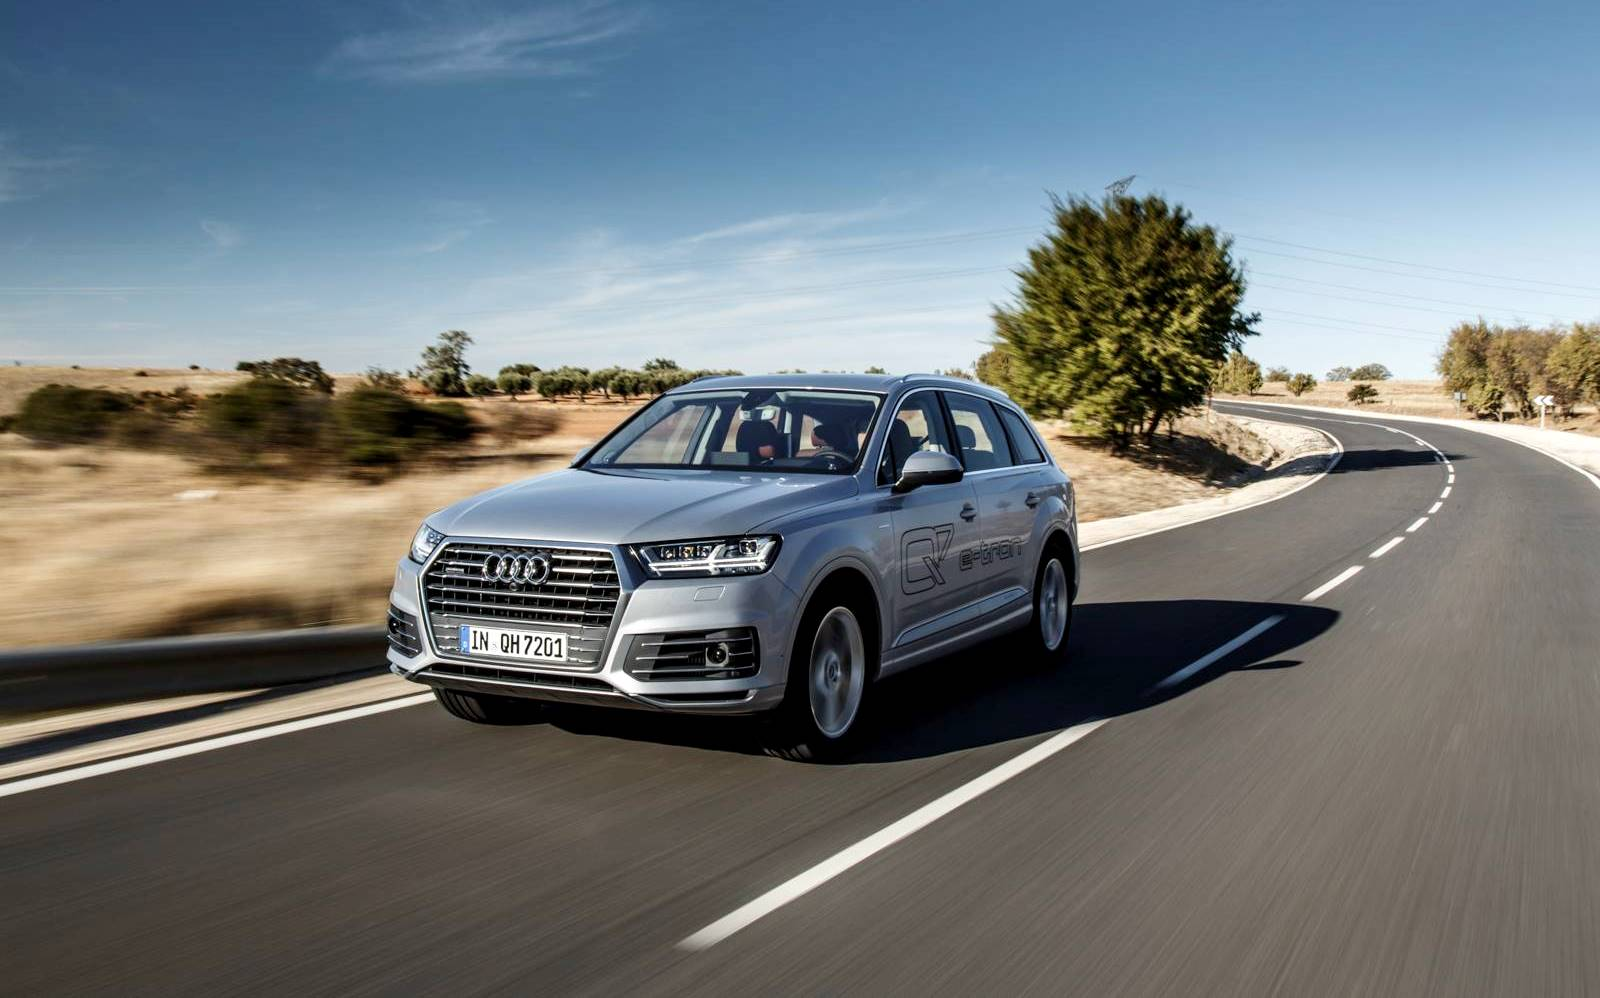 2016 audi q7 e tron quattro review gtspirit. Black Bedroom Furniture Sets. Home Design Ideas